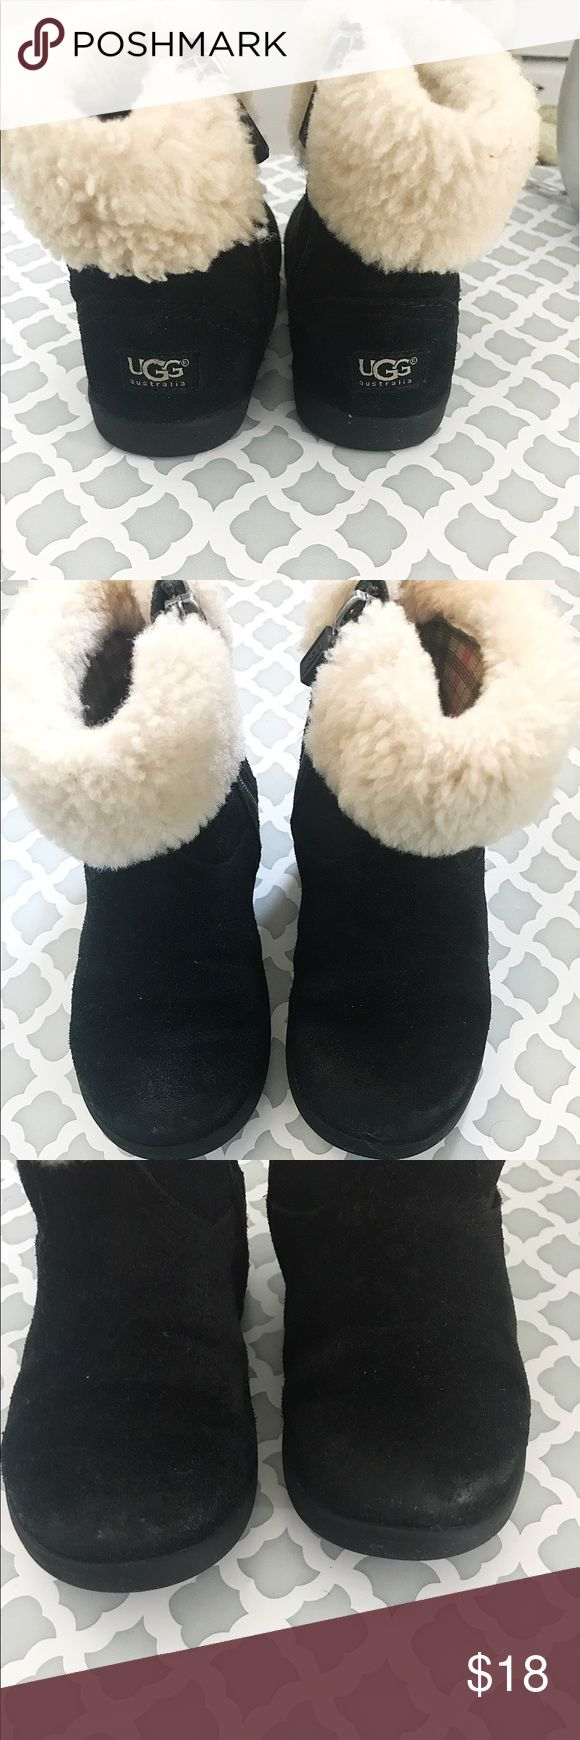 Ugg girls boots Black boots with zipper and sheep fur on top. Boots are on great condition . Has some wear and scuff on the front of the boots like on the toe parts. Perfect for winter . Uggs can be super expensive and it just doesn't make any sense to get them brand new when little ones love to play in the snow during winter and jump into puddles hence they love messing up their shoes  these will be perfect because they can really handle any situation and still be super cute and stylish…